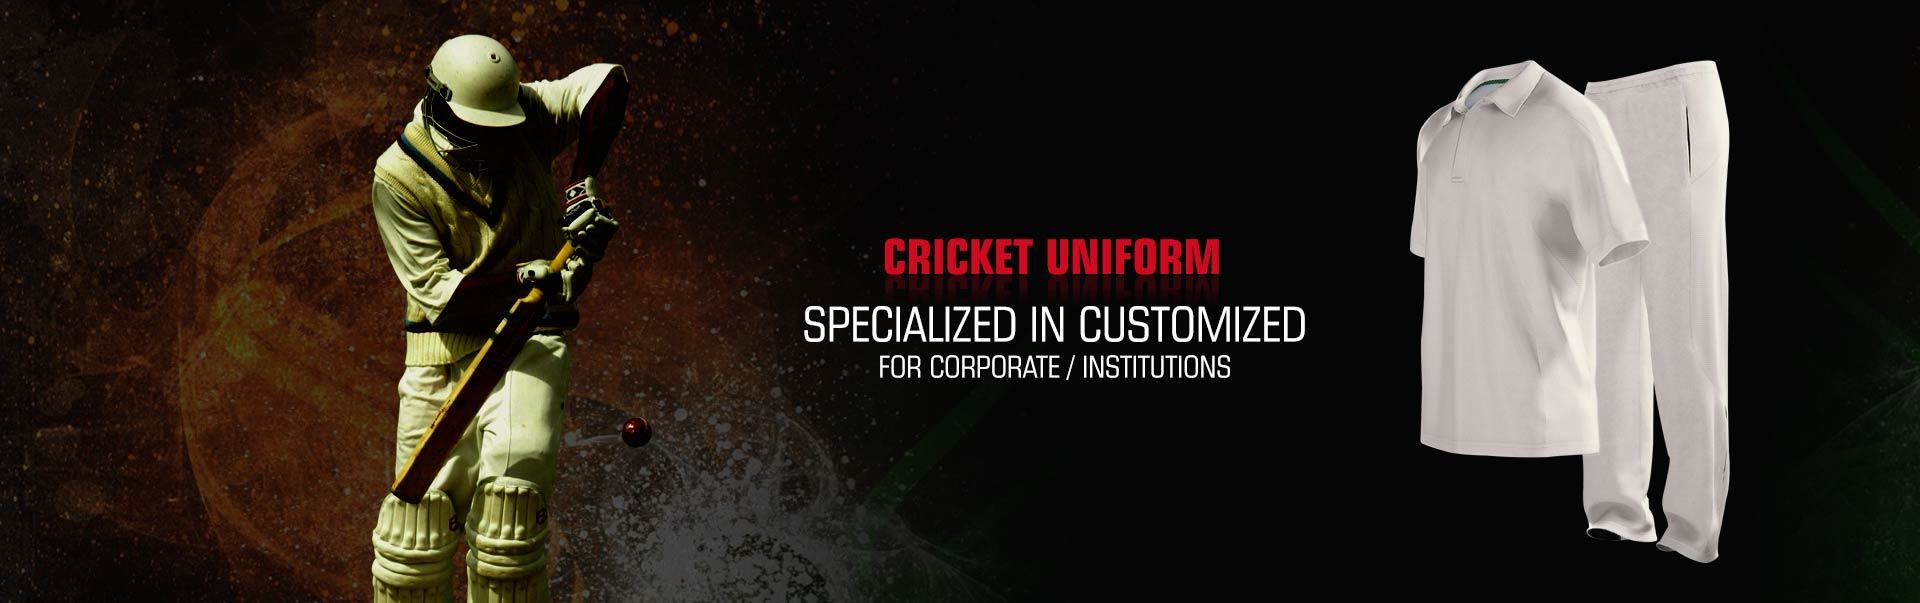 Cricket Uniform Wholesaler, Suppliers in Dayton